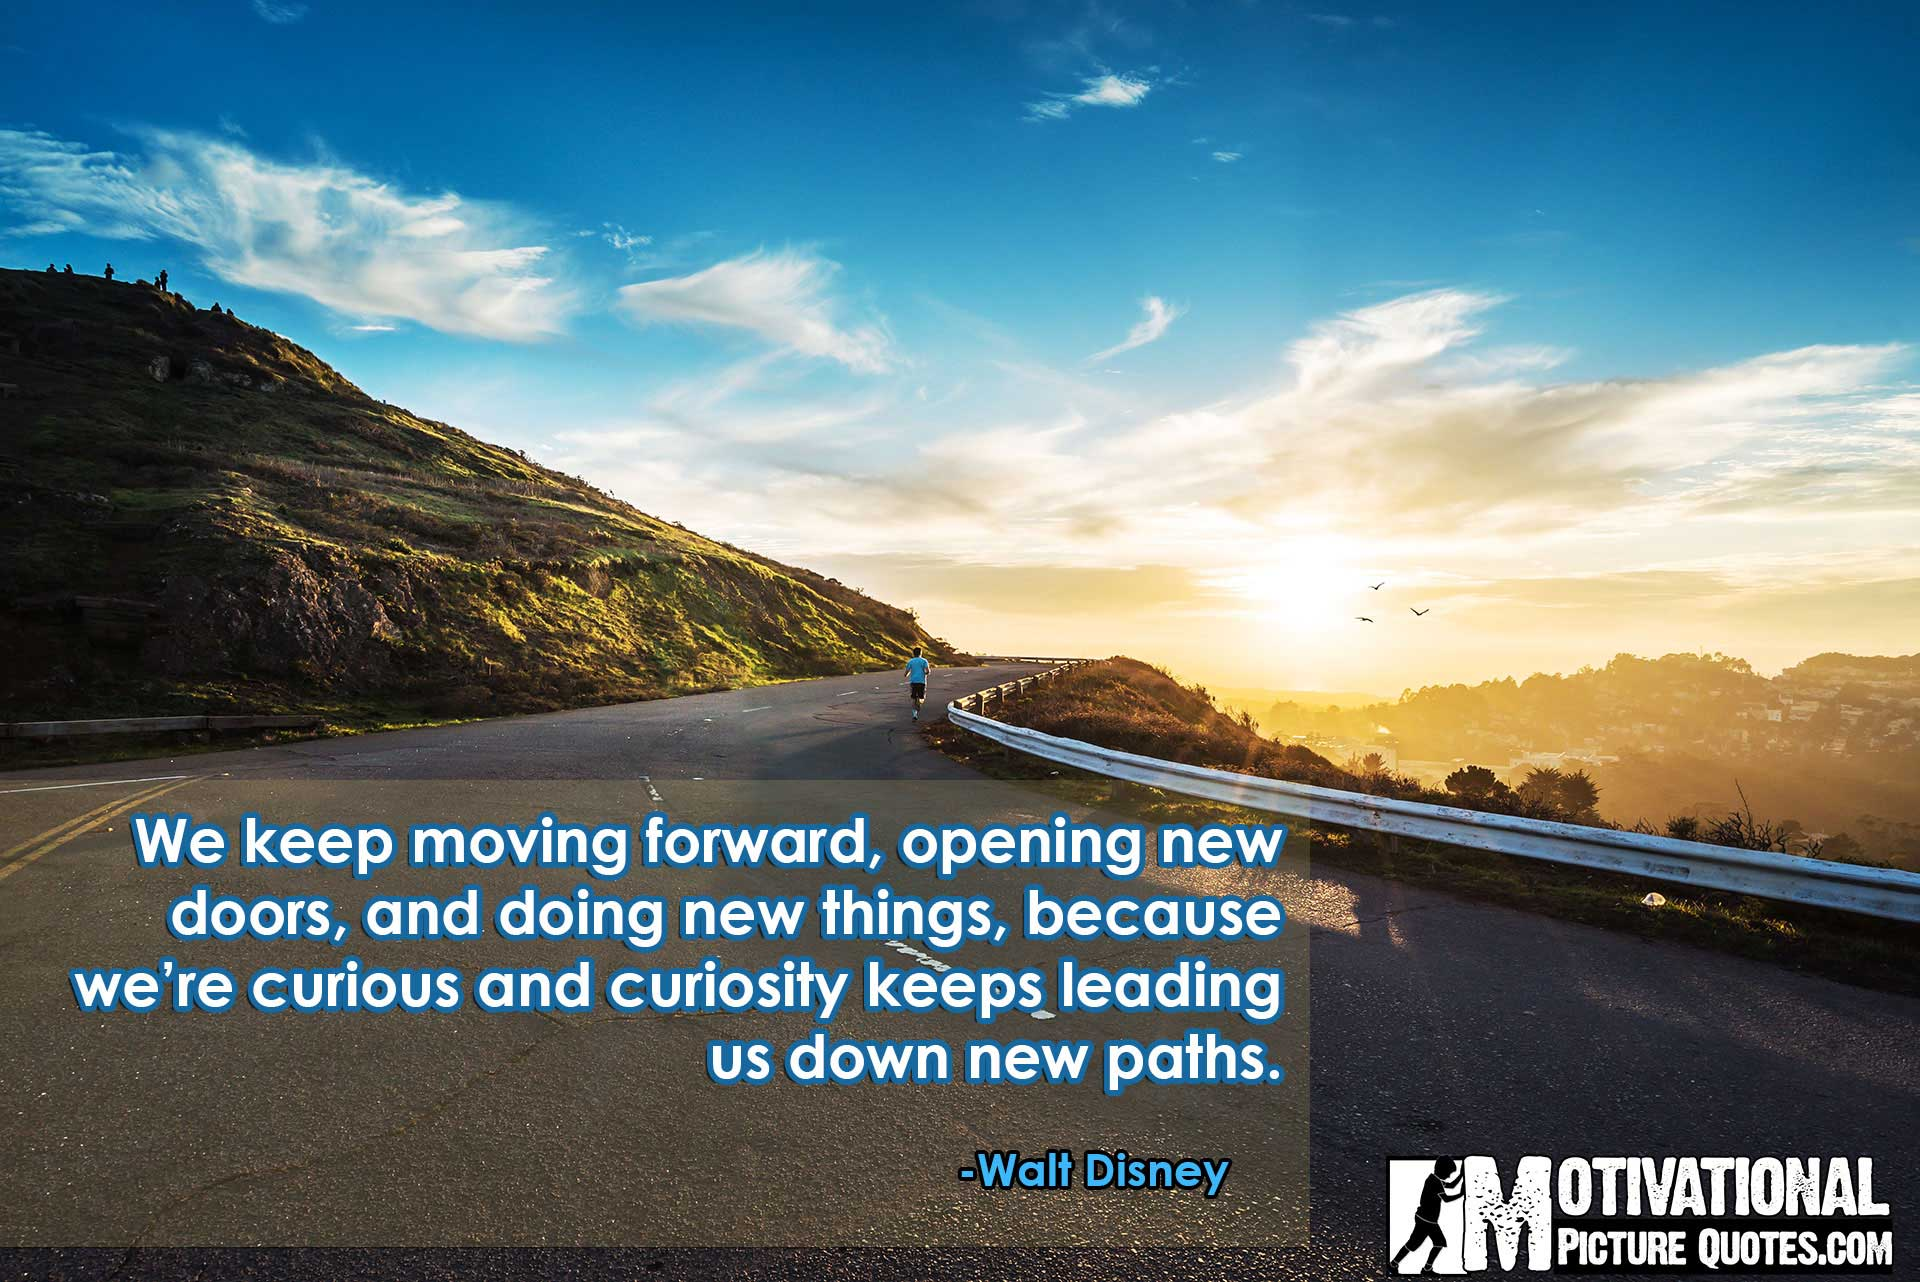 Inspiring Keep Moving Forward Quotes Pictures: 10+ Motivational Keep Moving Forward Quotes Images